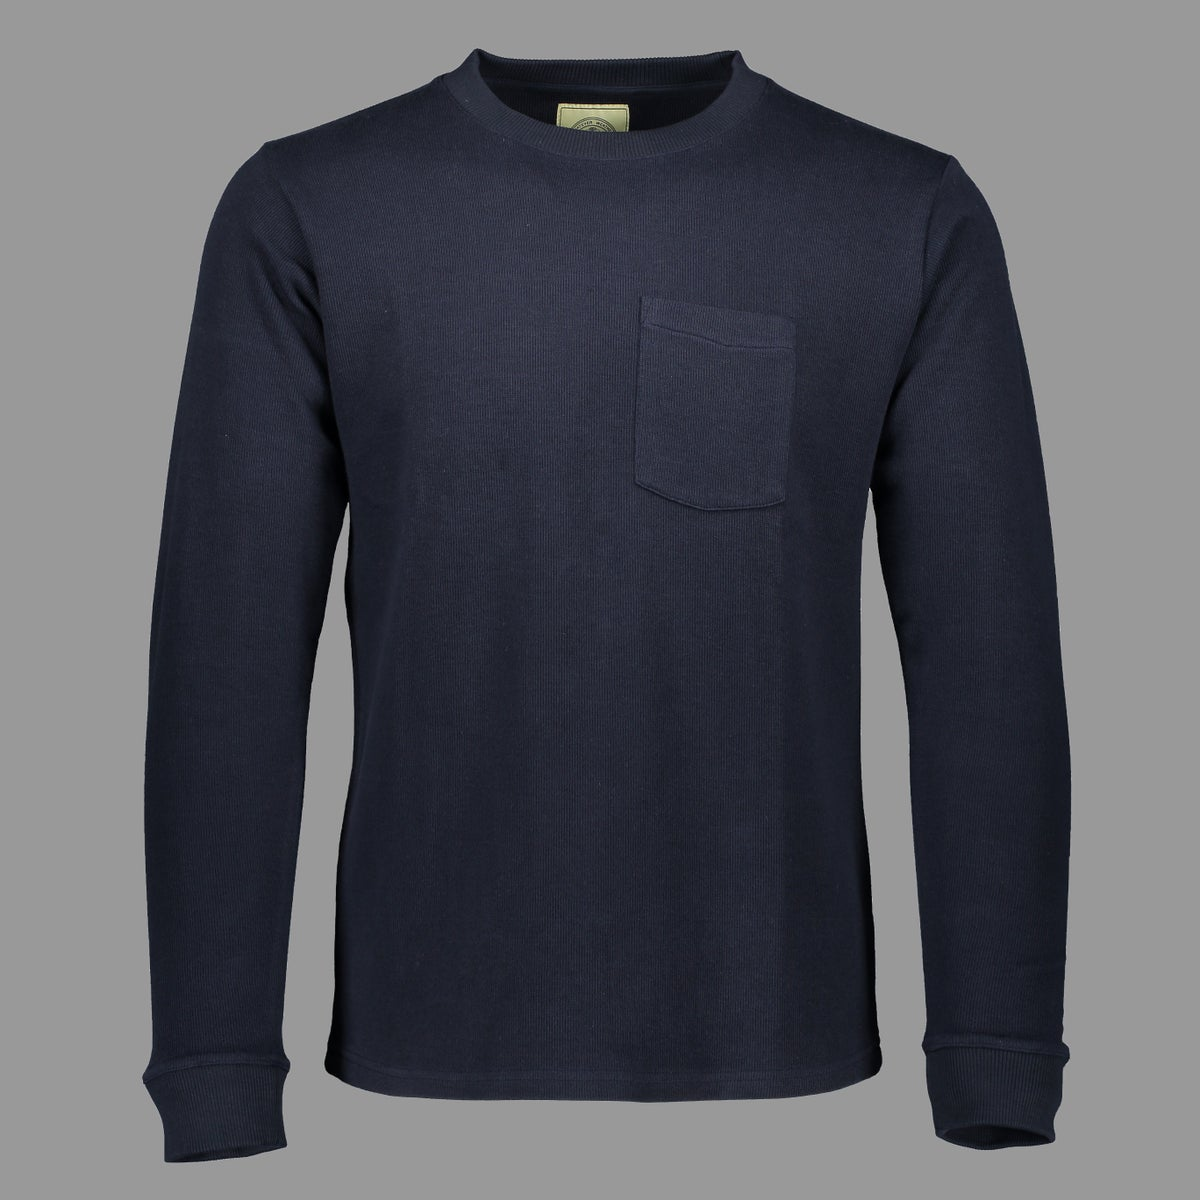 Image of THE CADET HEAVY WEIGHT POCKET SHIRT NAVY